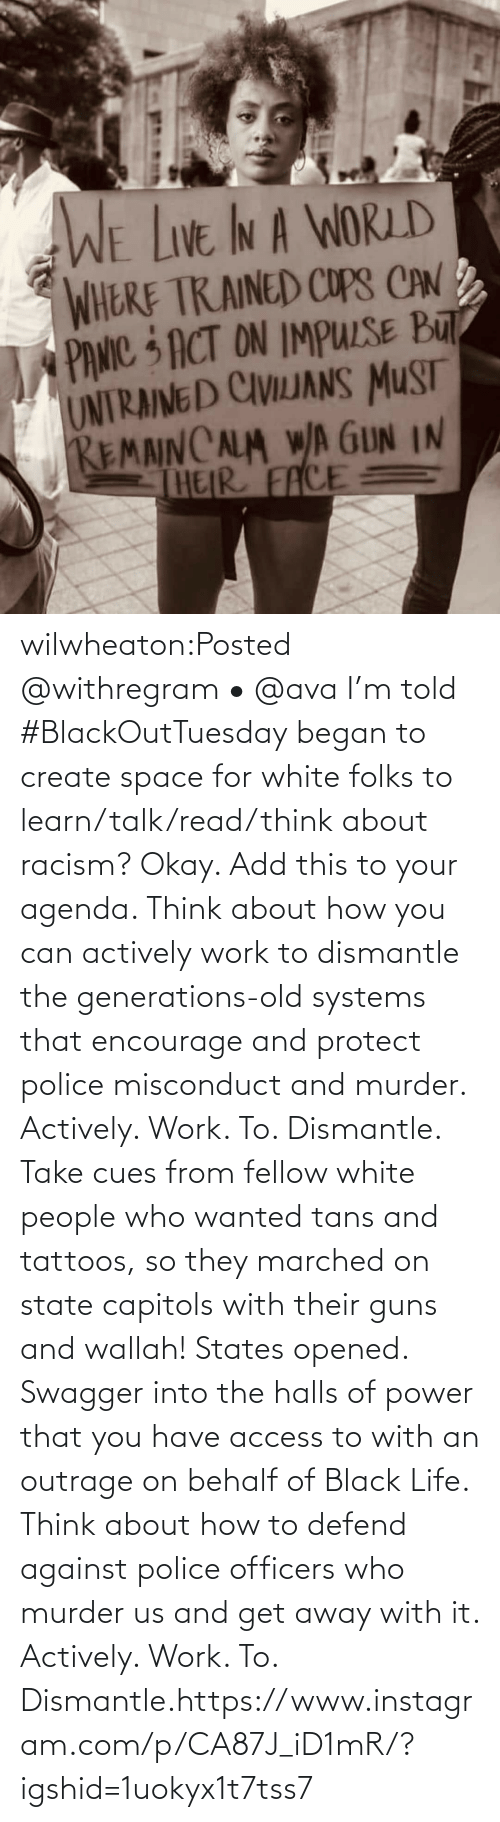 Police: wilwheaton:Posted @withregram • @ava I'm told #BlackOutTuesday began to create space for white folks to learn/talk/read/think about racism? Okay. Add this to your agenda. Think about how you can actively work to dismantle the generations-old systems that encourage and protect police misconduct and murder. Actively. Work. To. Dismantle. Take cues from fellow white people who wanted tans and tattoos, so they marched on state capitols with their guns and wallah! States opened. Swagger into the halls of power that you have access to with an outrage on behalf of Black Life. Think about how to defend against police officers who murder us and get away with it. Actively. Work. To. Dismantle.https://www.instagram.com/p/CA87J_iD1mR/?igshid=1uokyx1t7tss7